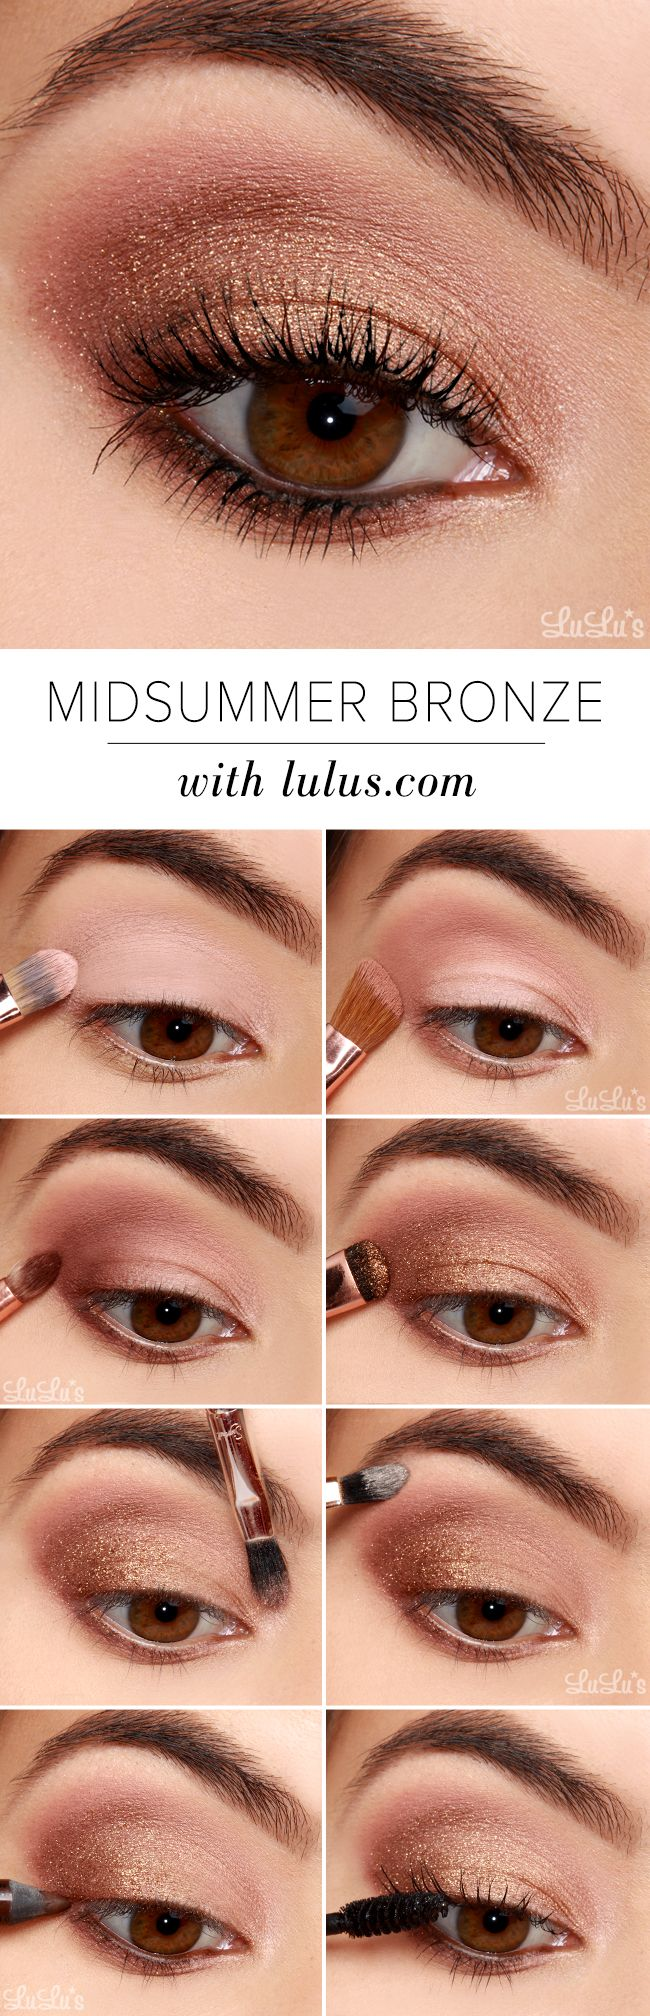 Lulus How-To: Midsummer Bronze Eyeshadow Tutorial with Sigma!